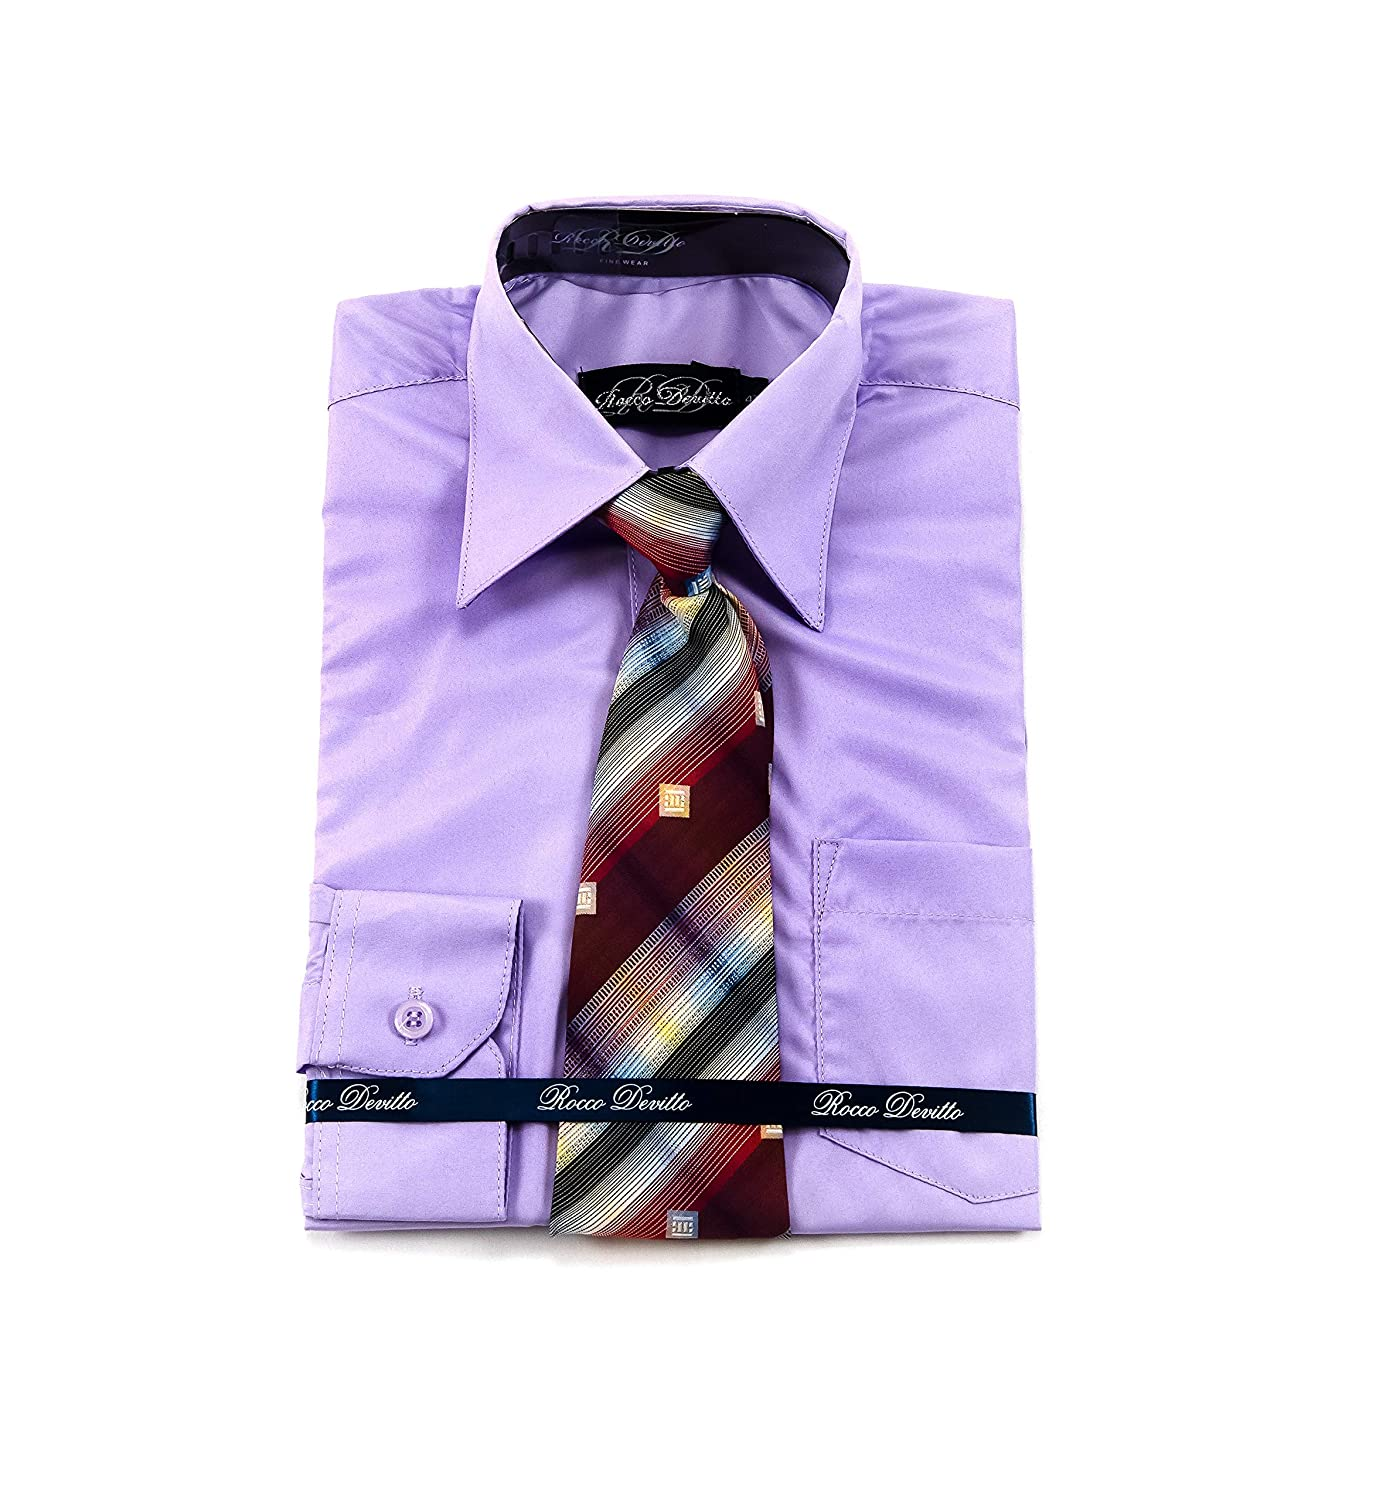 Rocco Devitto 2 Piece Dress Shirt//Lavender